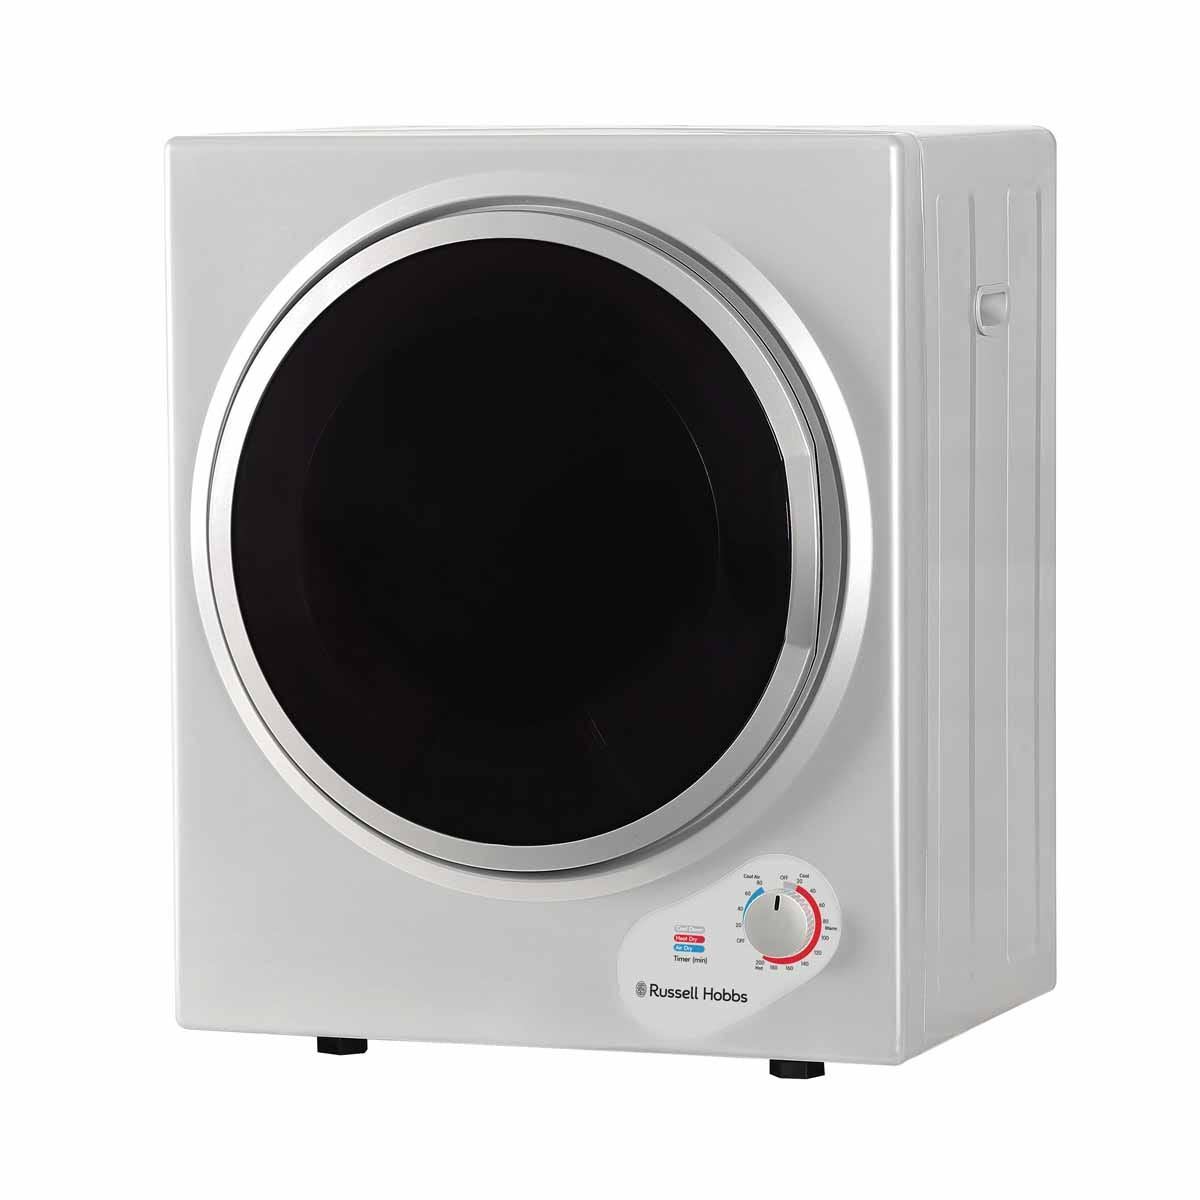 Russell Hobbs RH3VTD800S 2.5kg Compact Vented Tumble Dryer - Silver